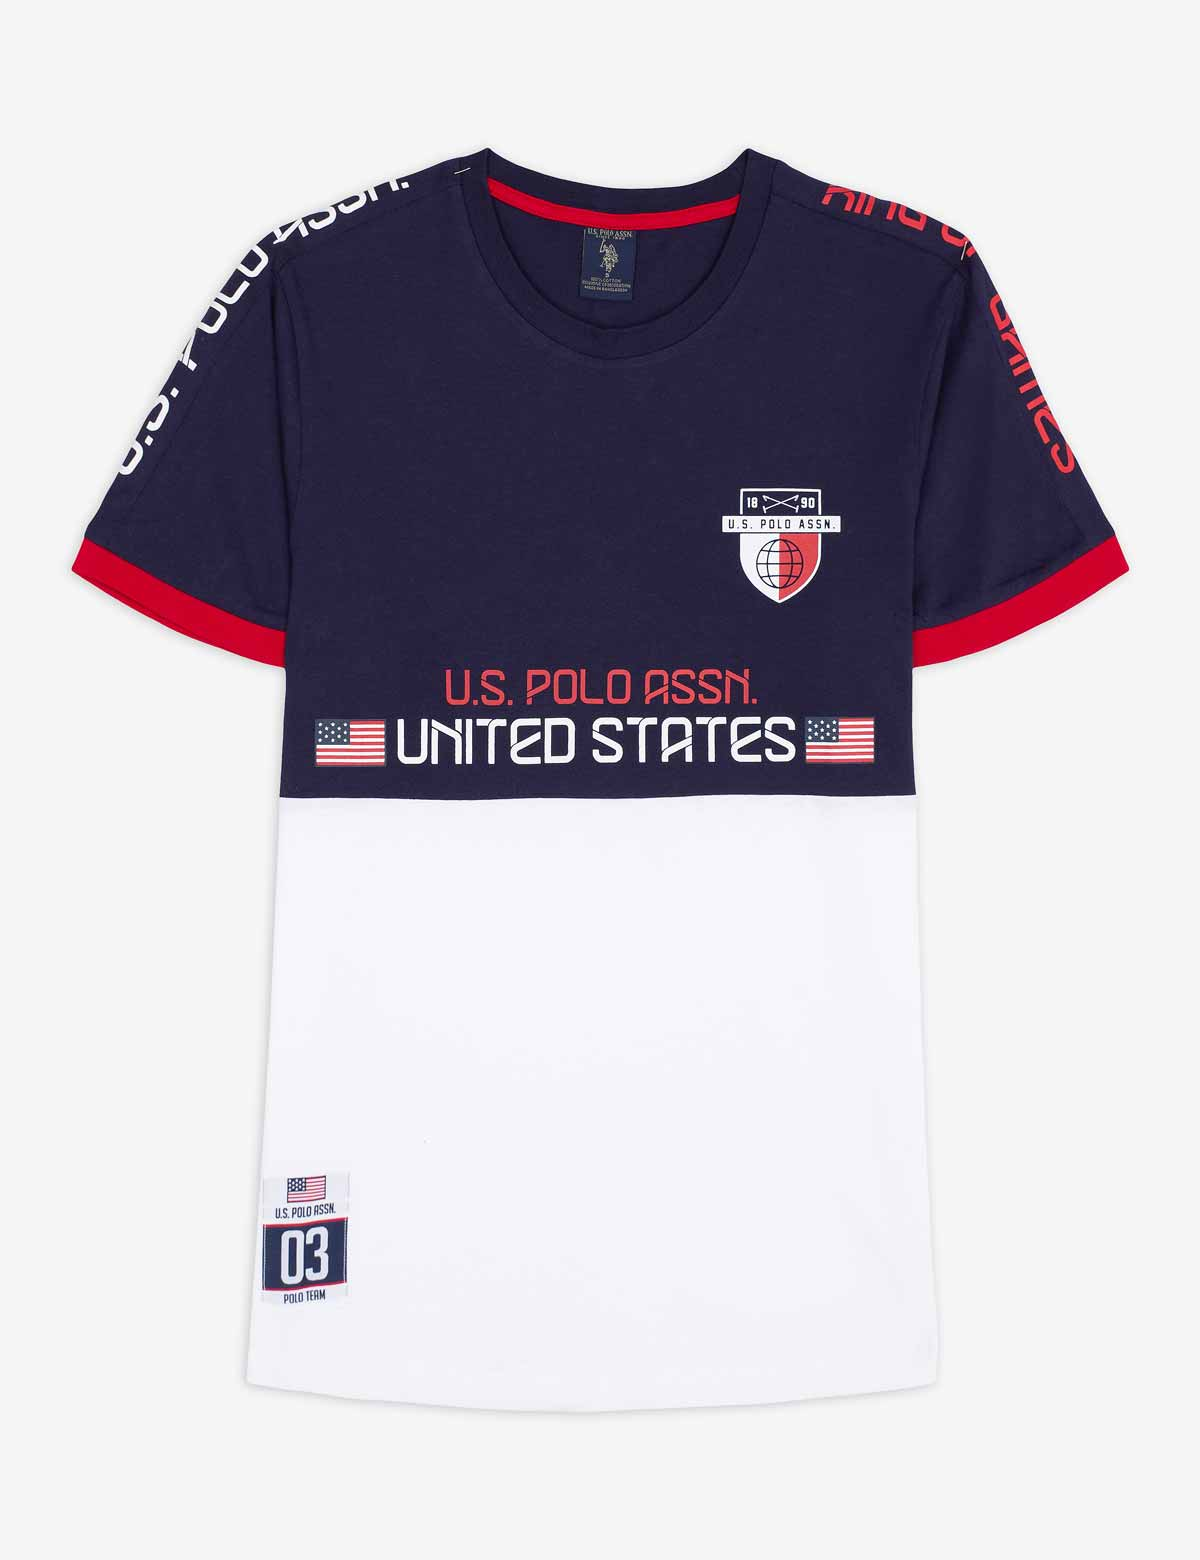 USPA USA COLORBLOCK SIDE TAPING T-SHIRT - U.S. Polo Assn.